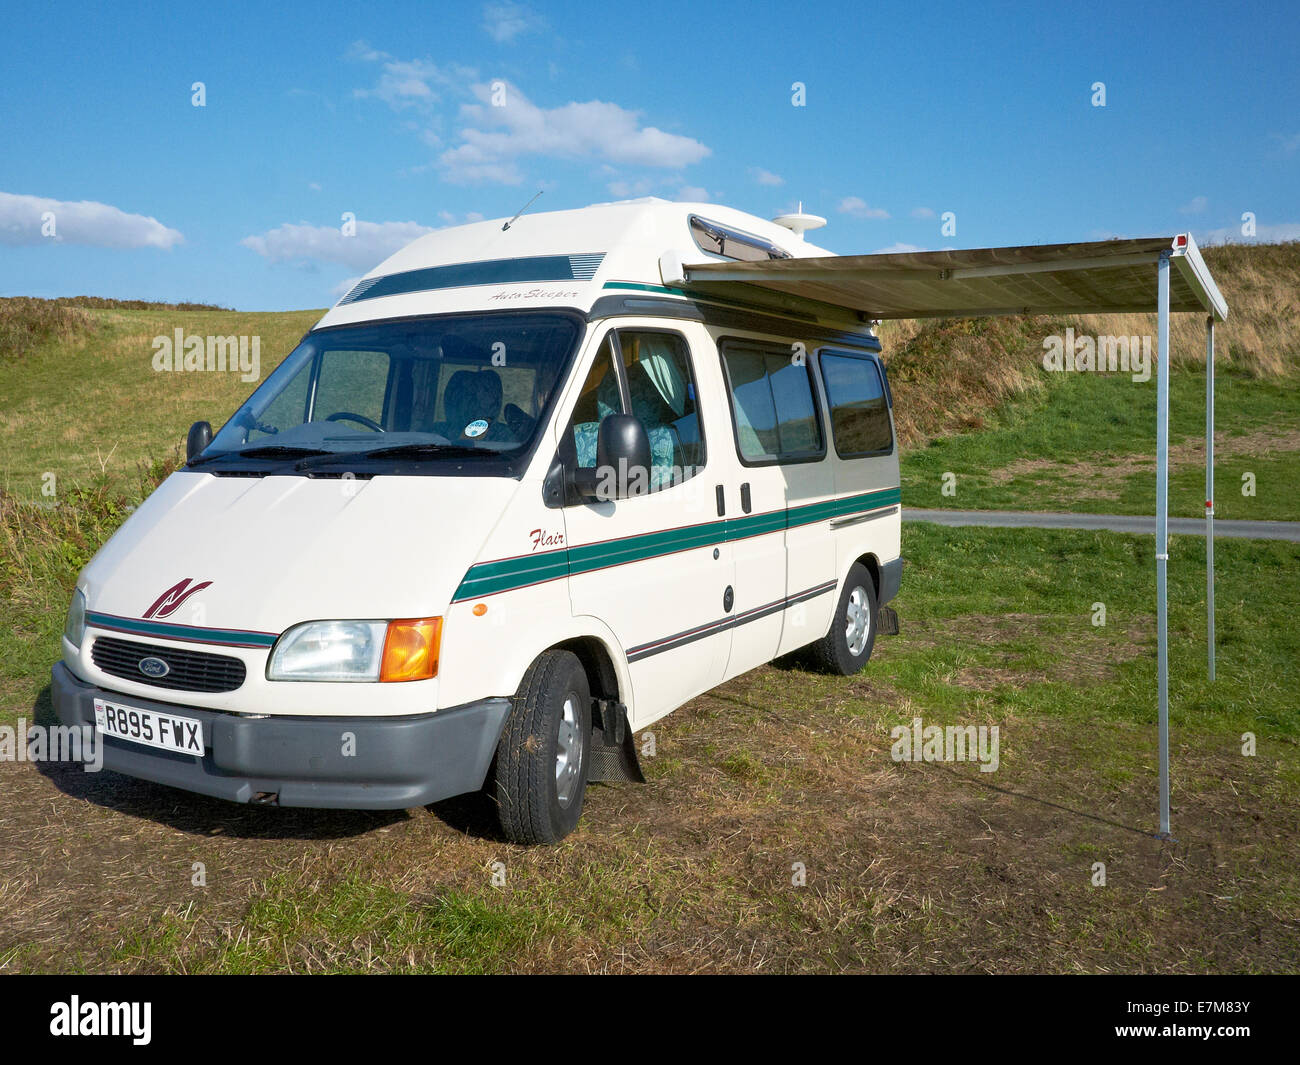 Ford Flair auto-sleeper on a campsite in Wales UK - Stock Image